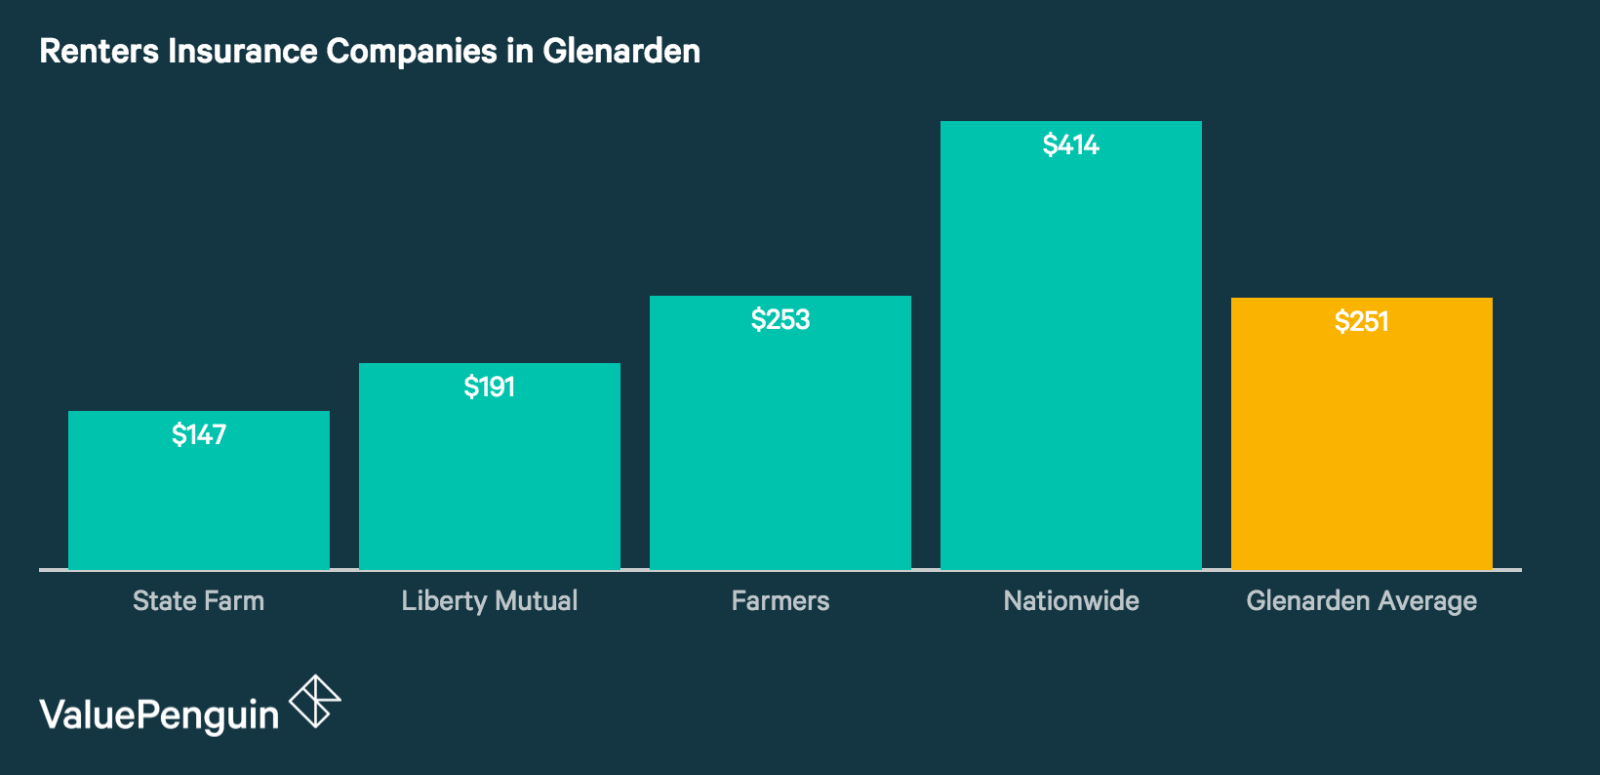 Renters Insurance Rates in Glenarden